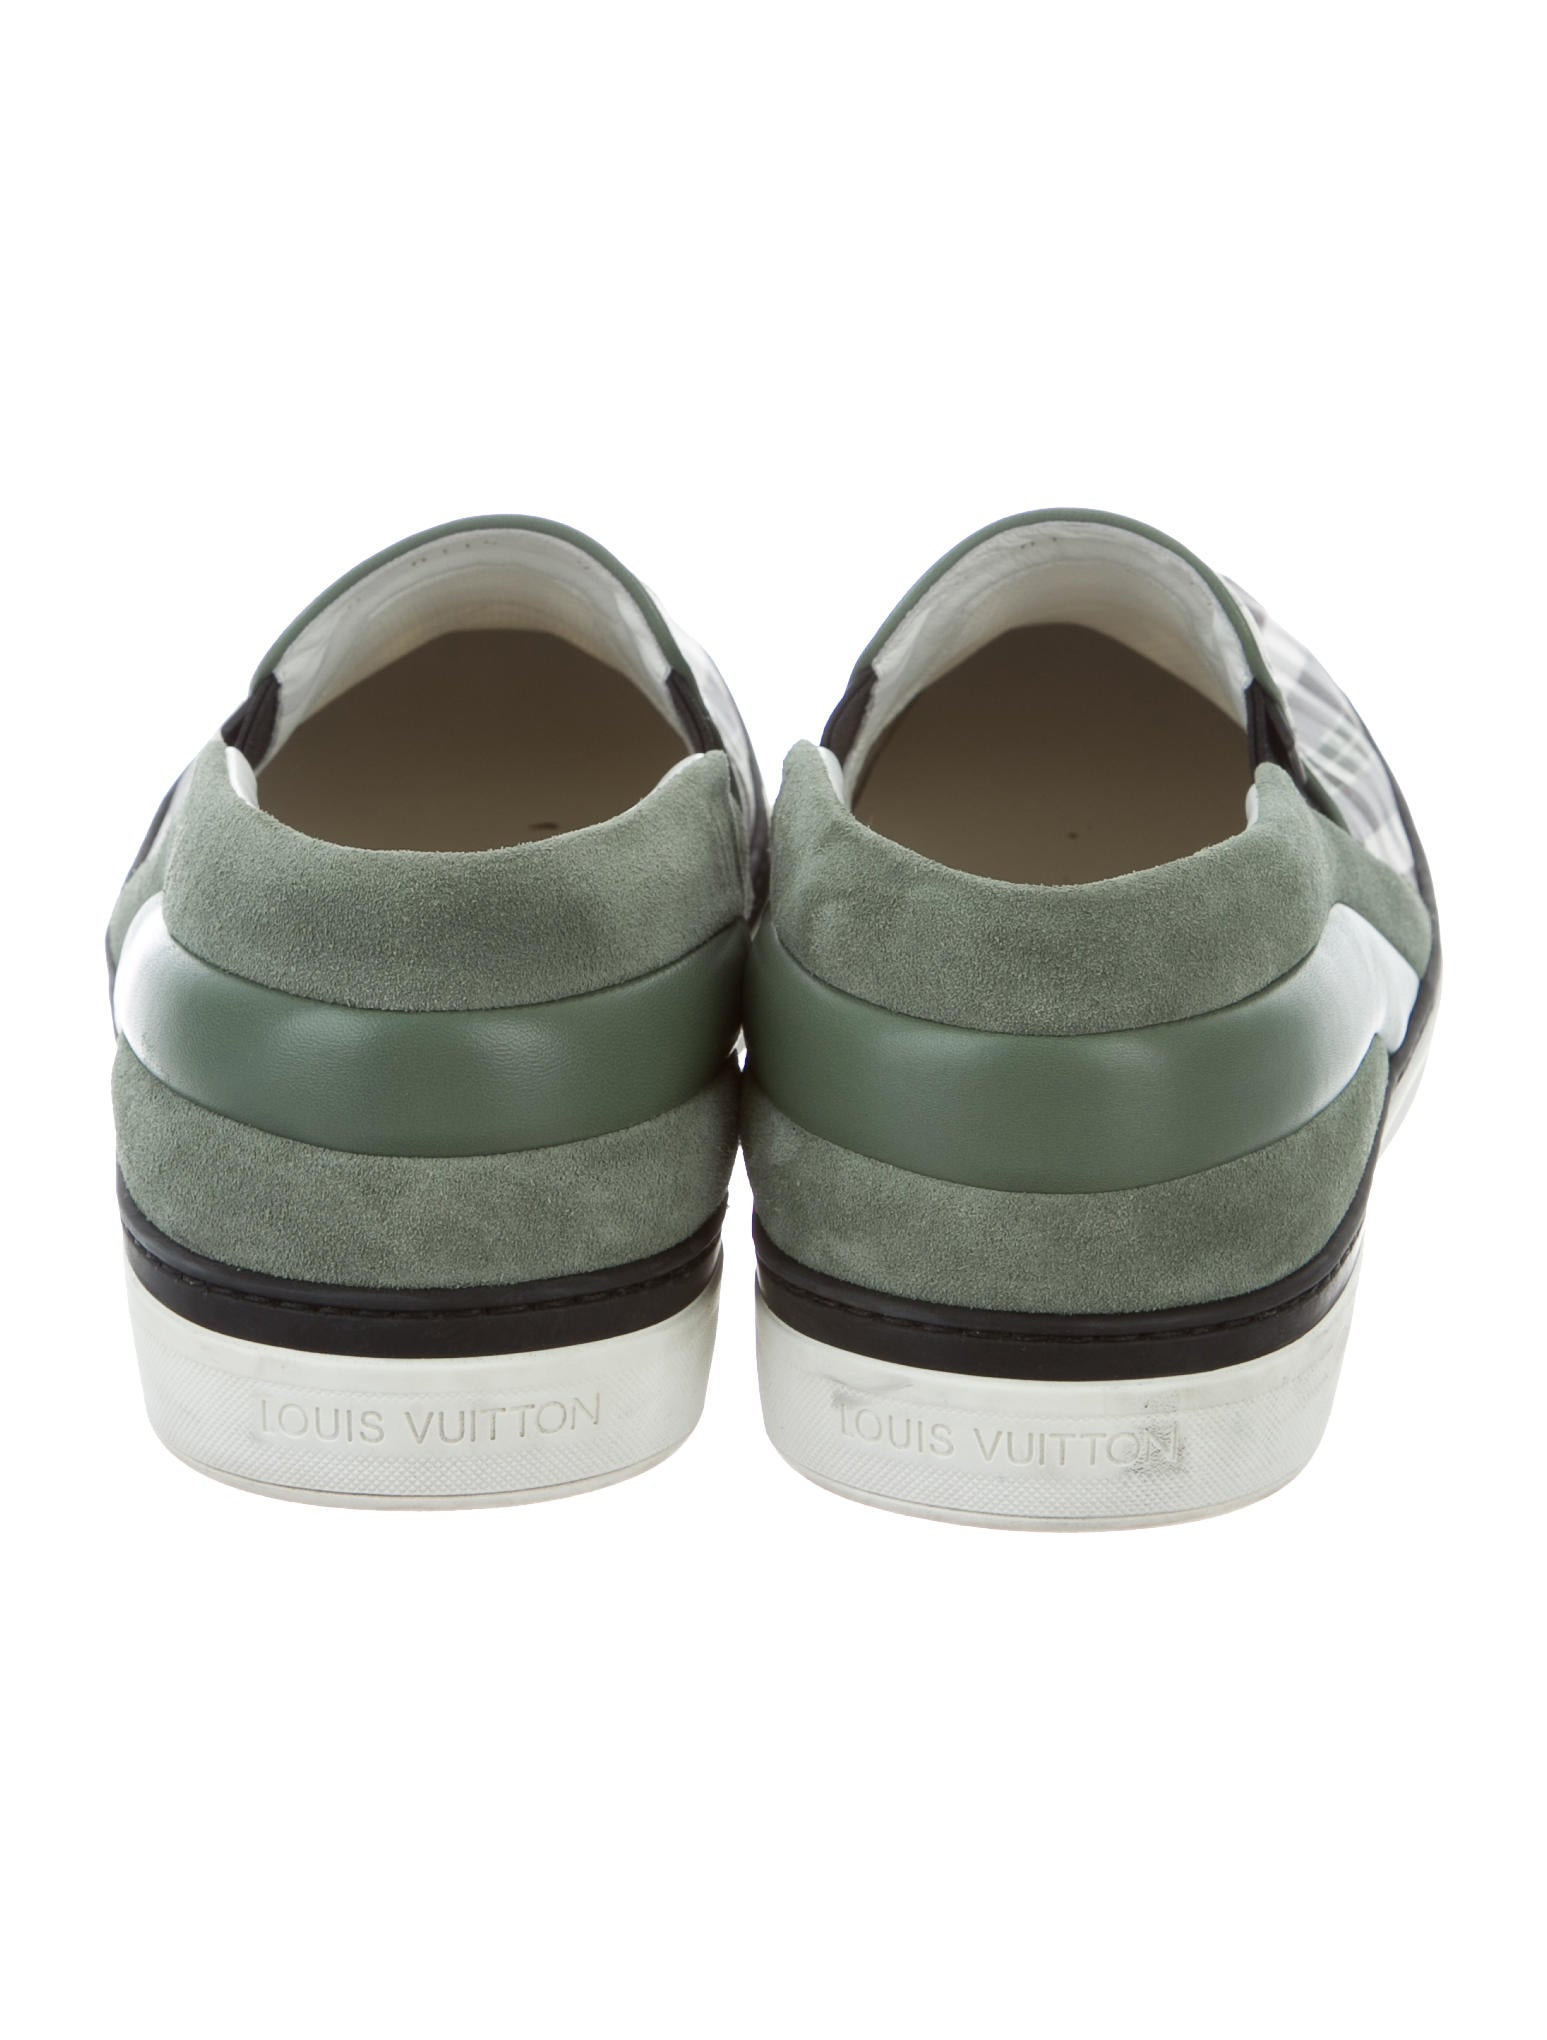 Louis Vuitton Monogram Twister Sneakers Shoes  : LOU1107554enlarged from www.therealreal.com size 1547 x 2040 jpeg 162kB